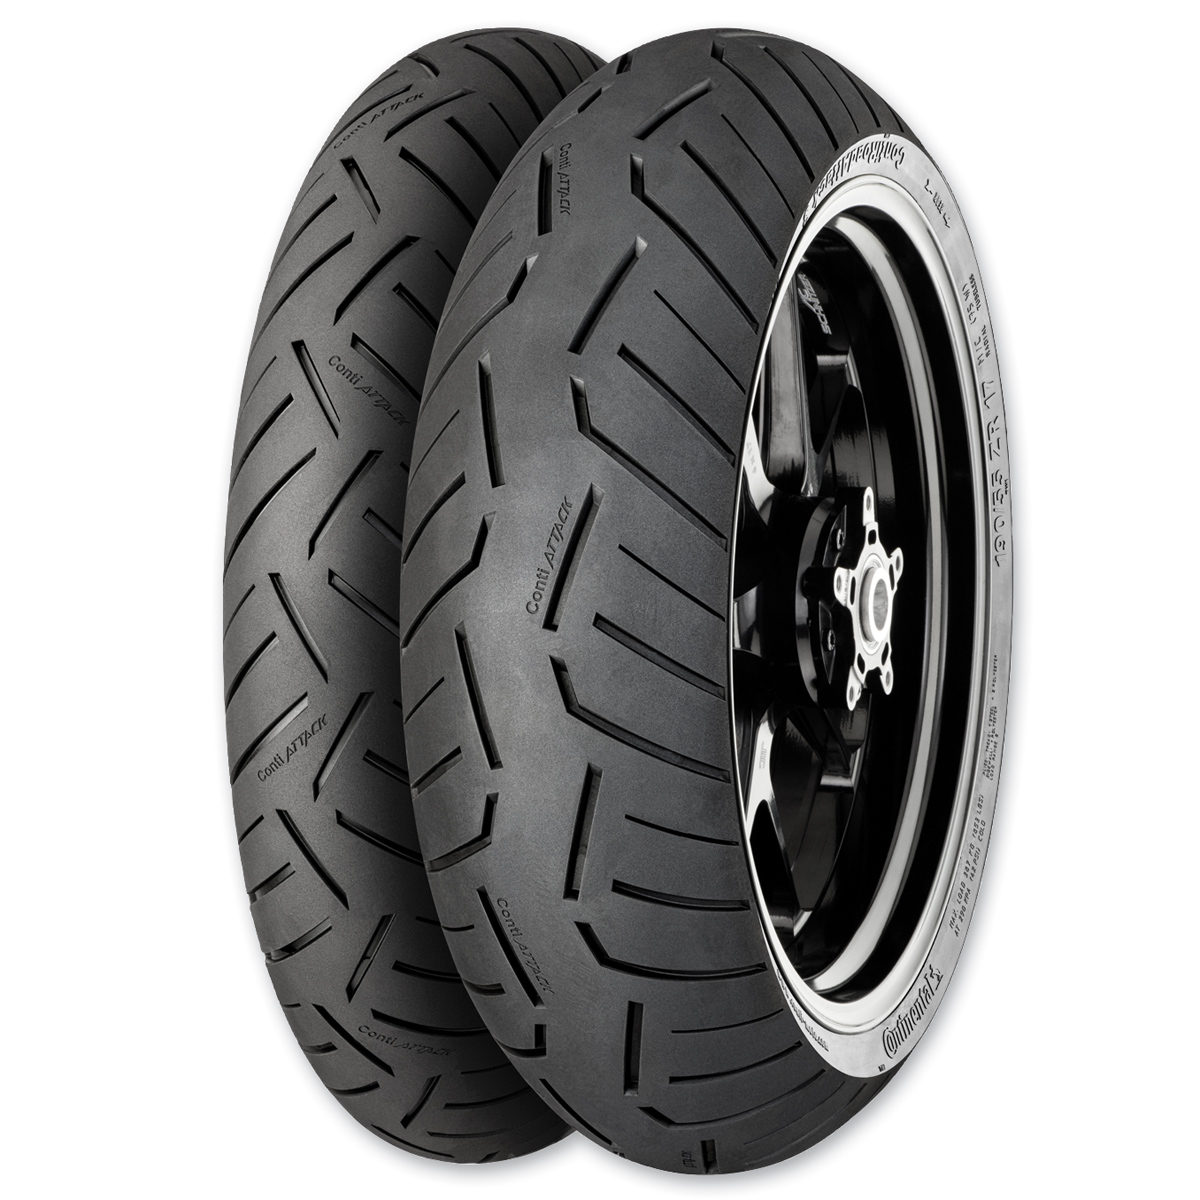 Continental Road Attack 3 GT 180/55ZR17 Rear Tire